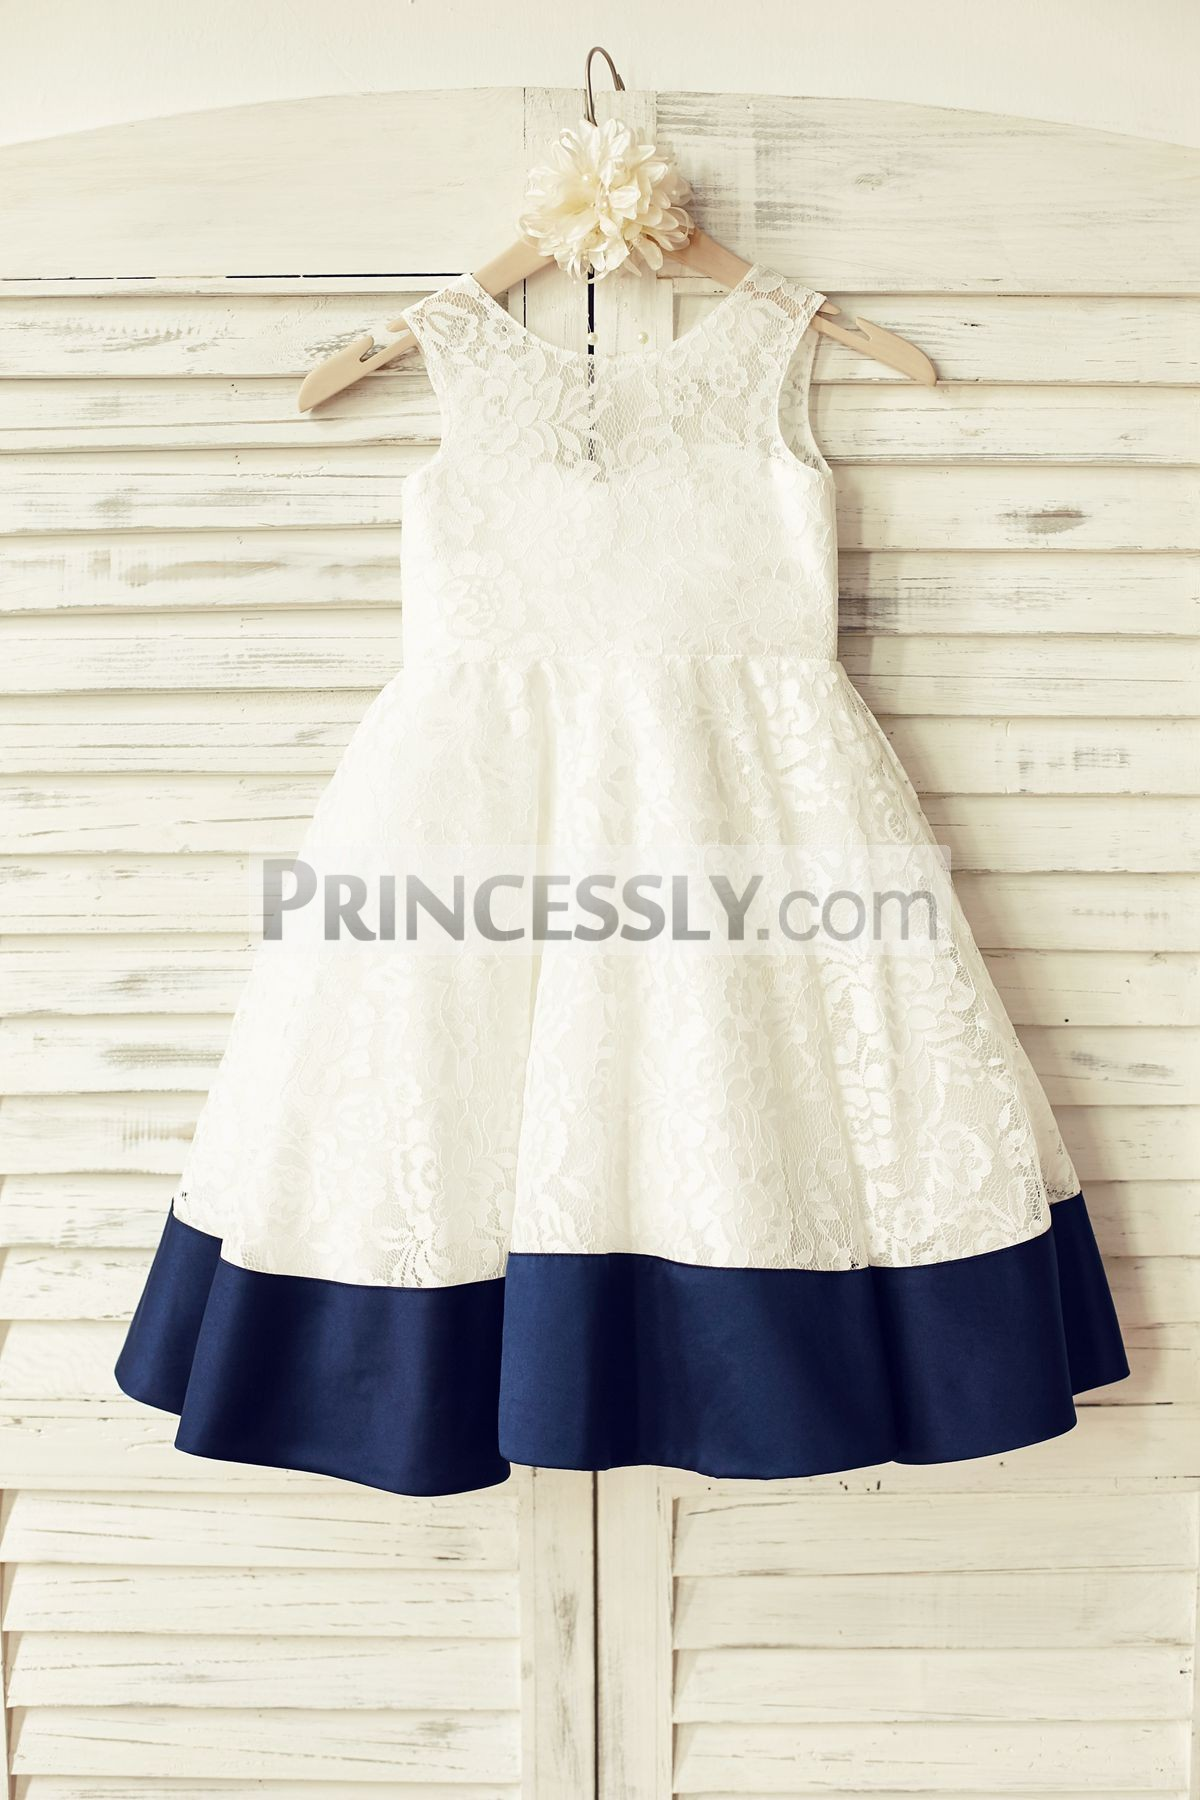 Sleeveless Deep V Back Ivory Lace Flower Girl Dress With Navy Blue